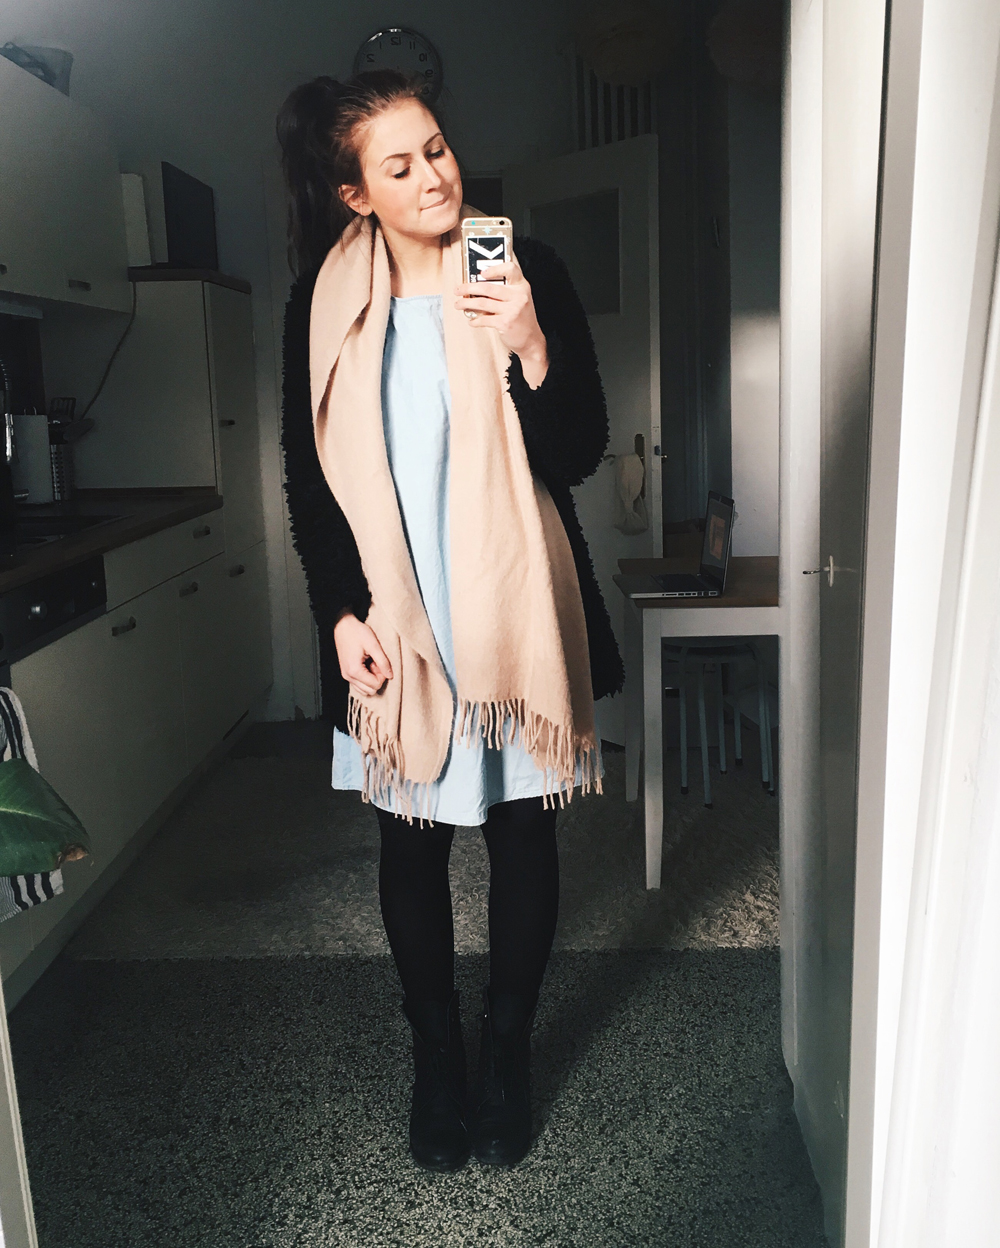 Instagramoutfit